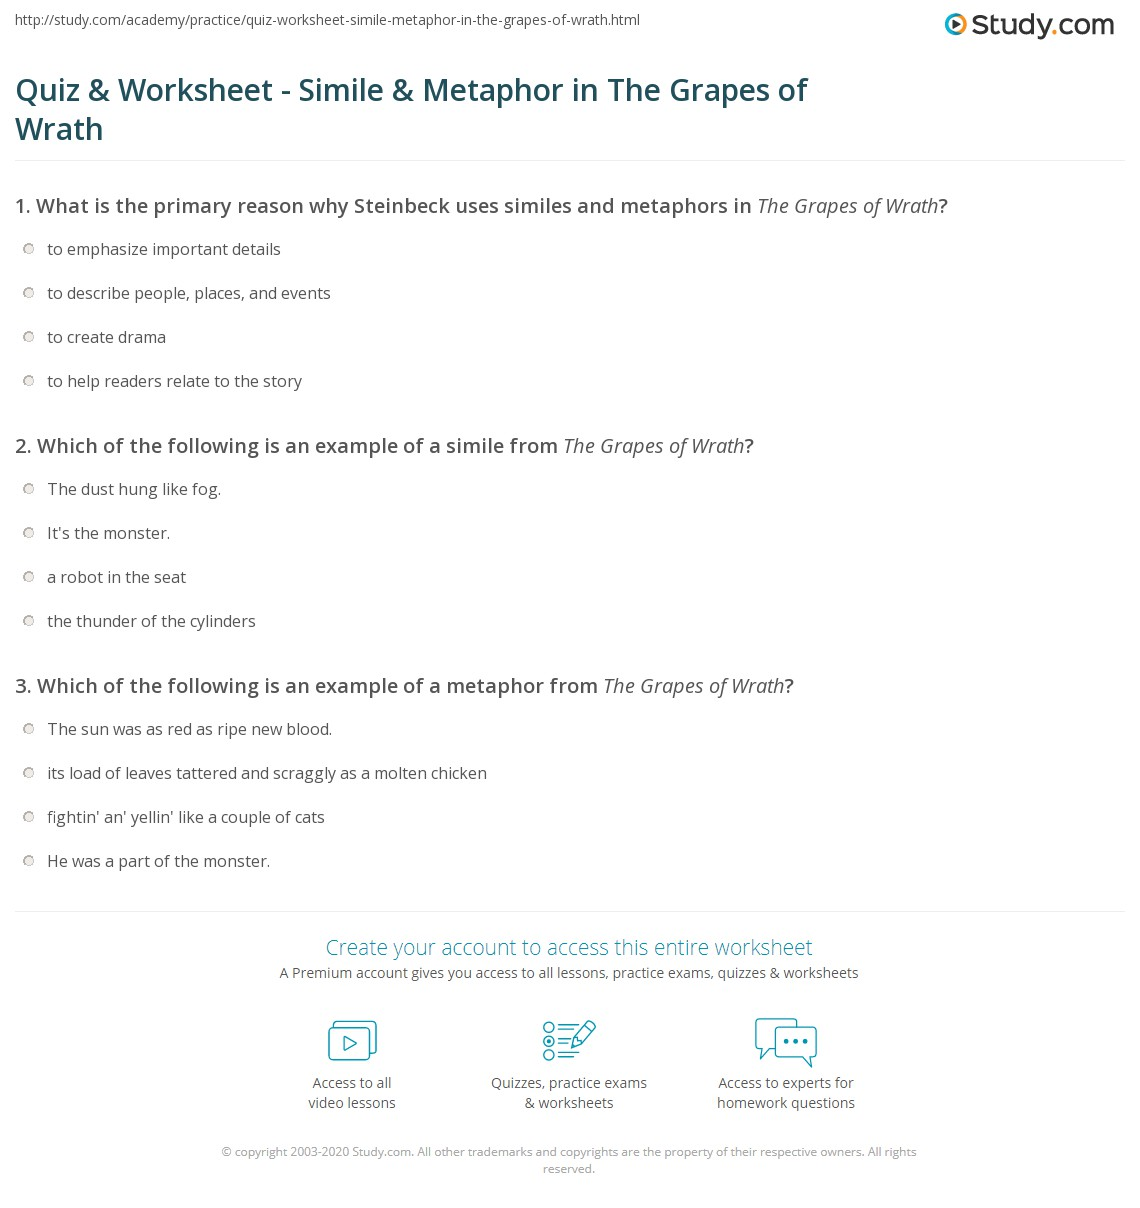 worksheet Metaphor Worksheet quiz worksheet simile metaphor in the grapes of wrath study com print worksheet